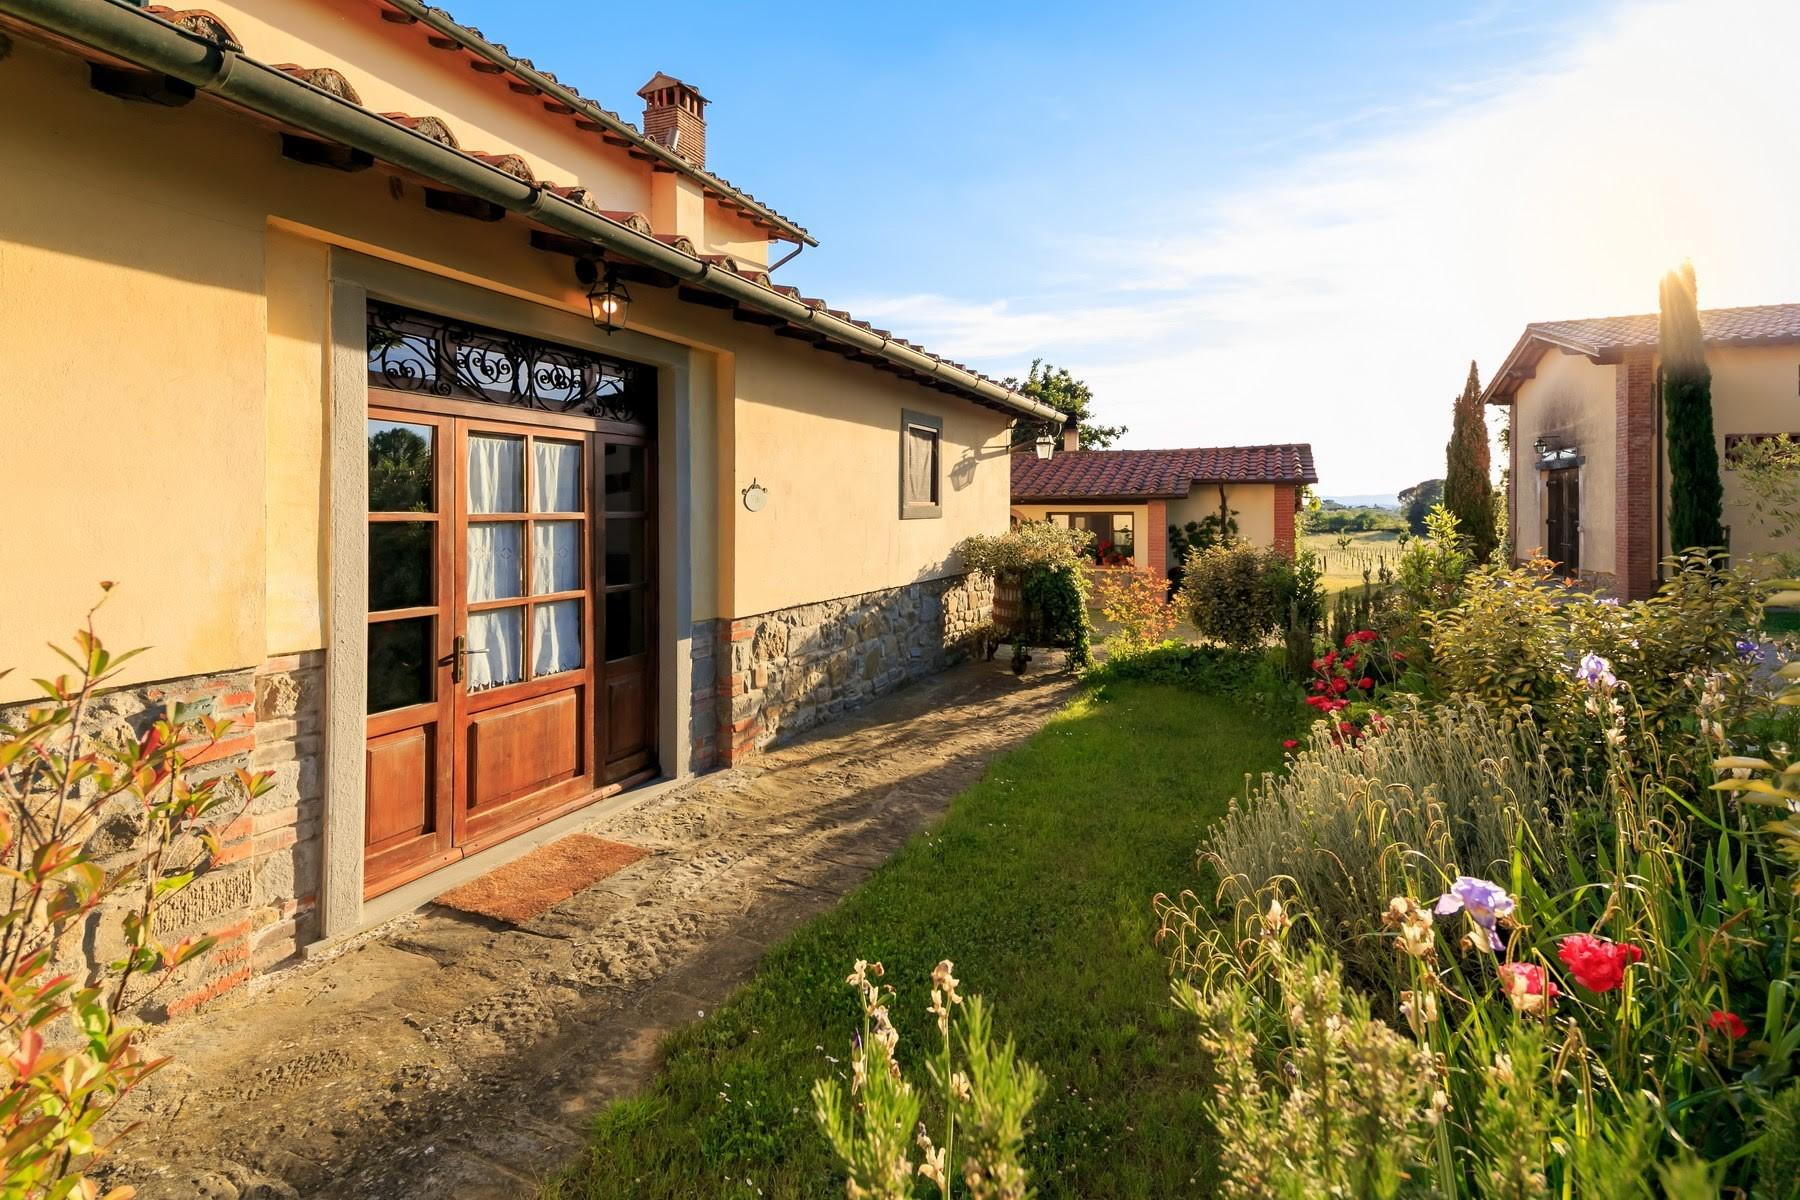 Agritourismo and Biodynamic farm in the heart of Tuscany with 15 ha of land. - 16